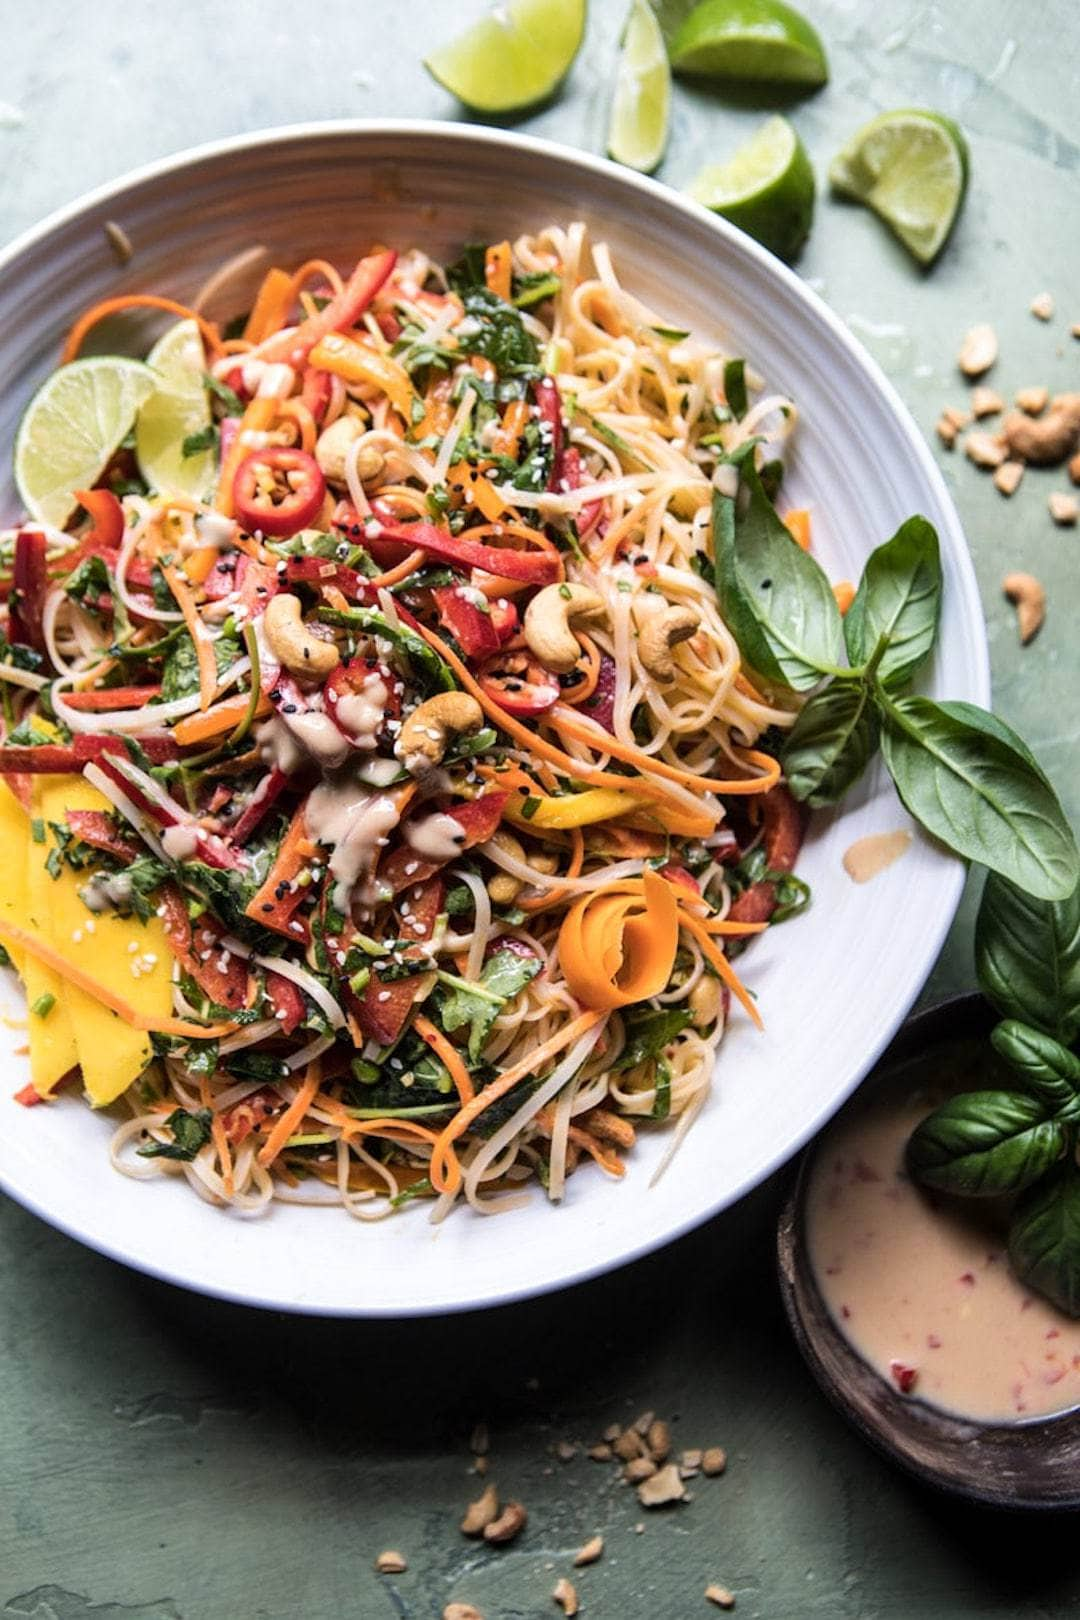 rainbow vegetable and noodle salad in a large bowl